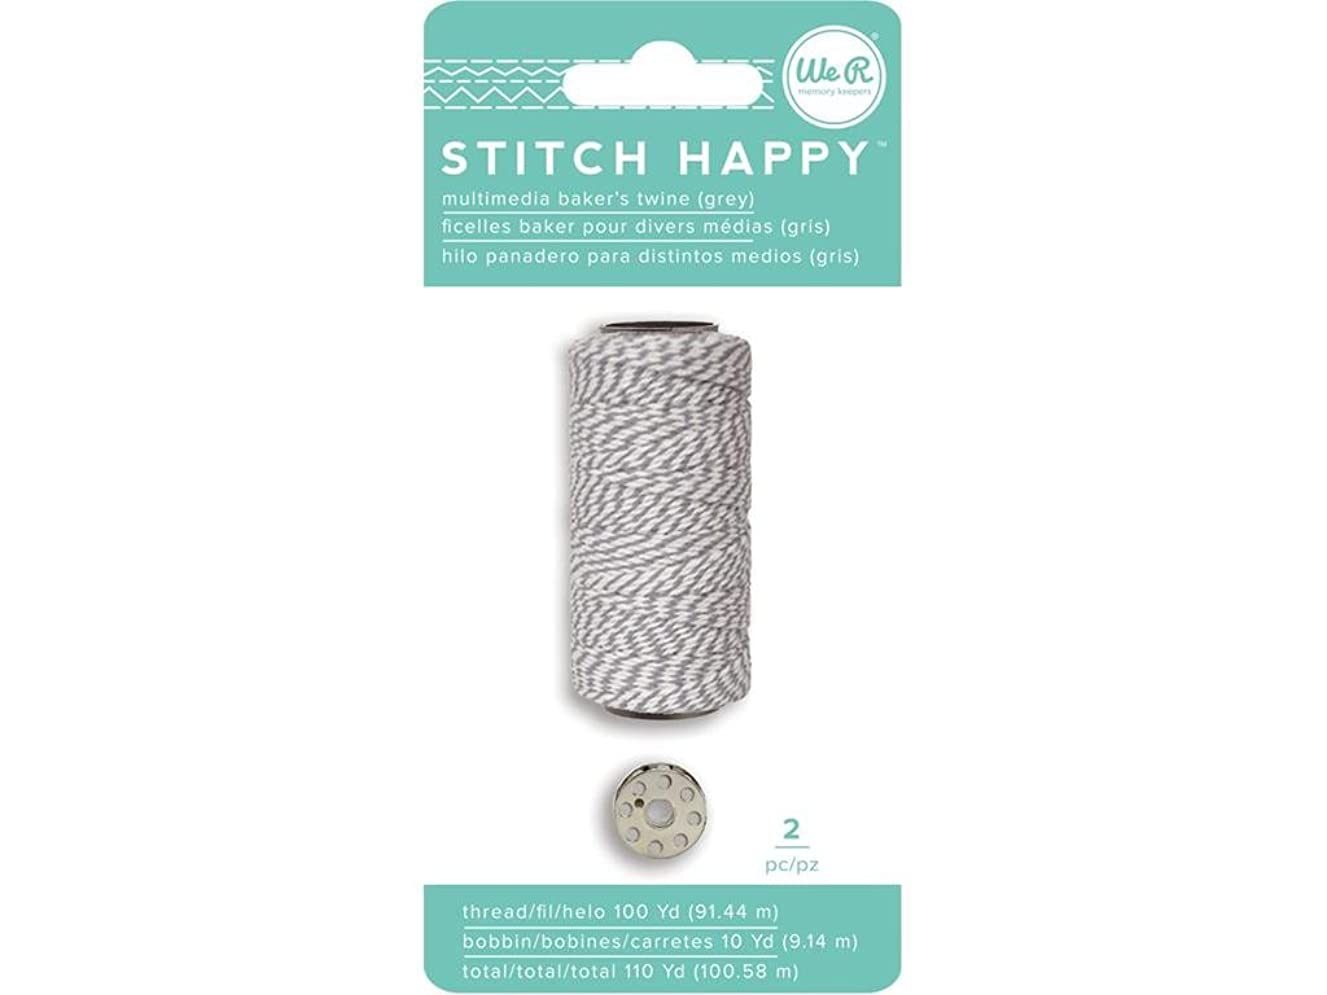 We R Memory Keepers We R Memory Stitch Bakers Grey Sth Happy Twine&Bobbin